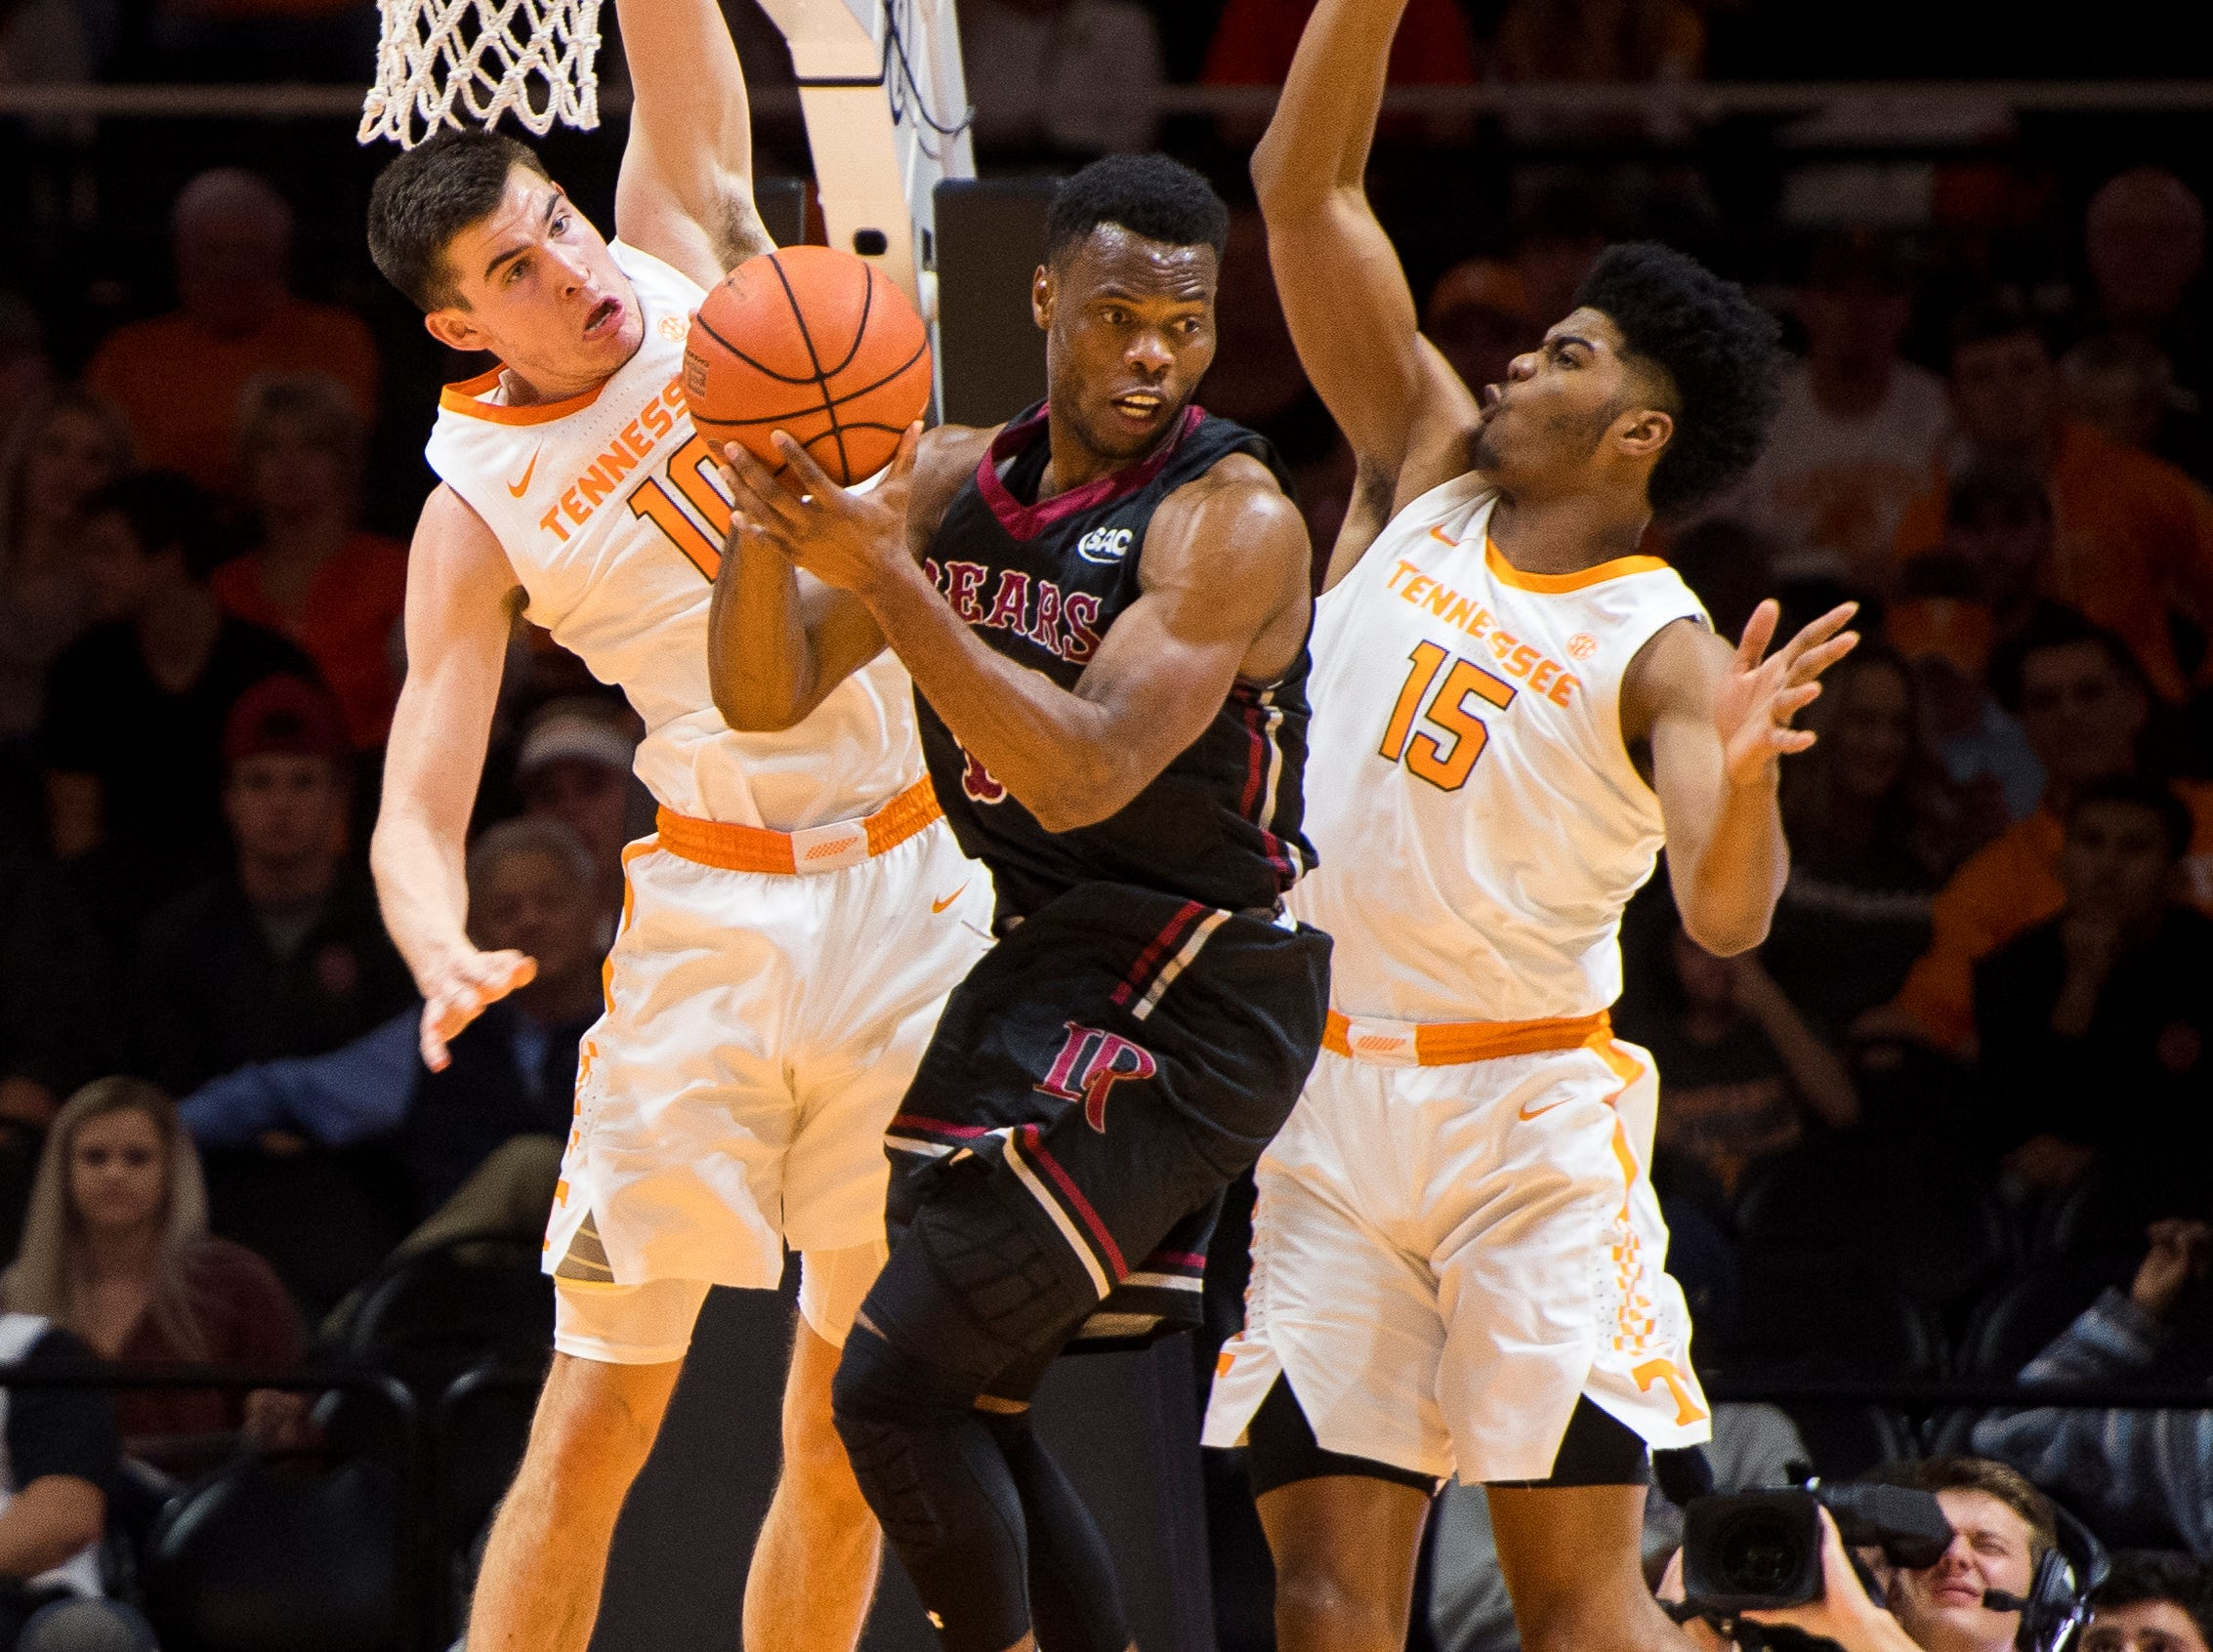 Tennessee forward John Fulkerson (10) and Tennessee forward Derrick Walker (15) defends Lenoir-Rhyne guard Djibril Diallo (13) during Tennessee's basketball game against Lenoir-Rhyne at Thompson-Boling Arena in Knoxville on Tuesday, November 6, 2018.